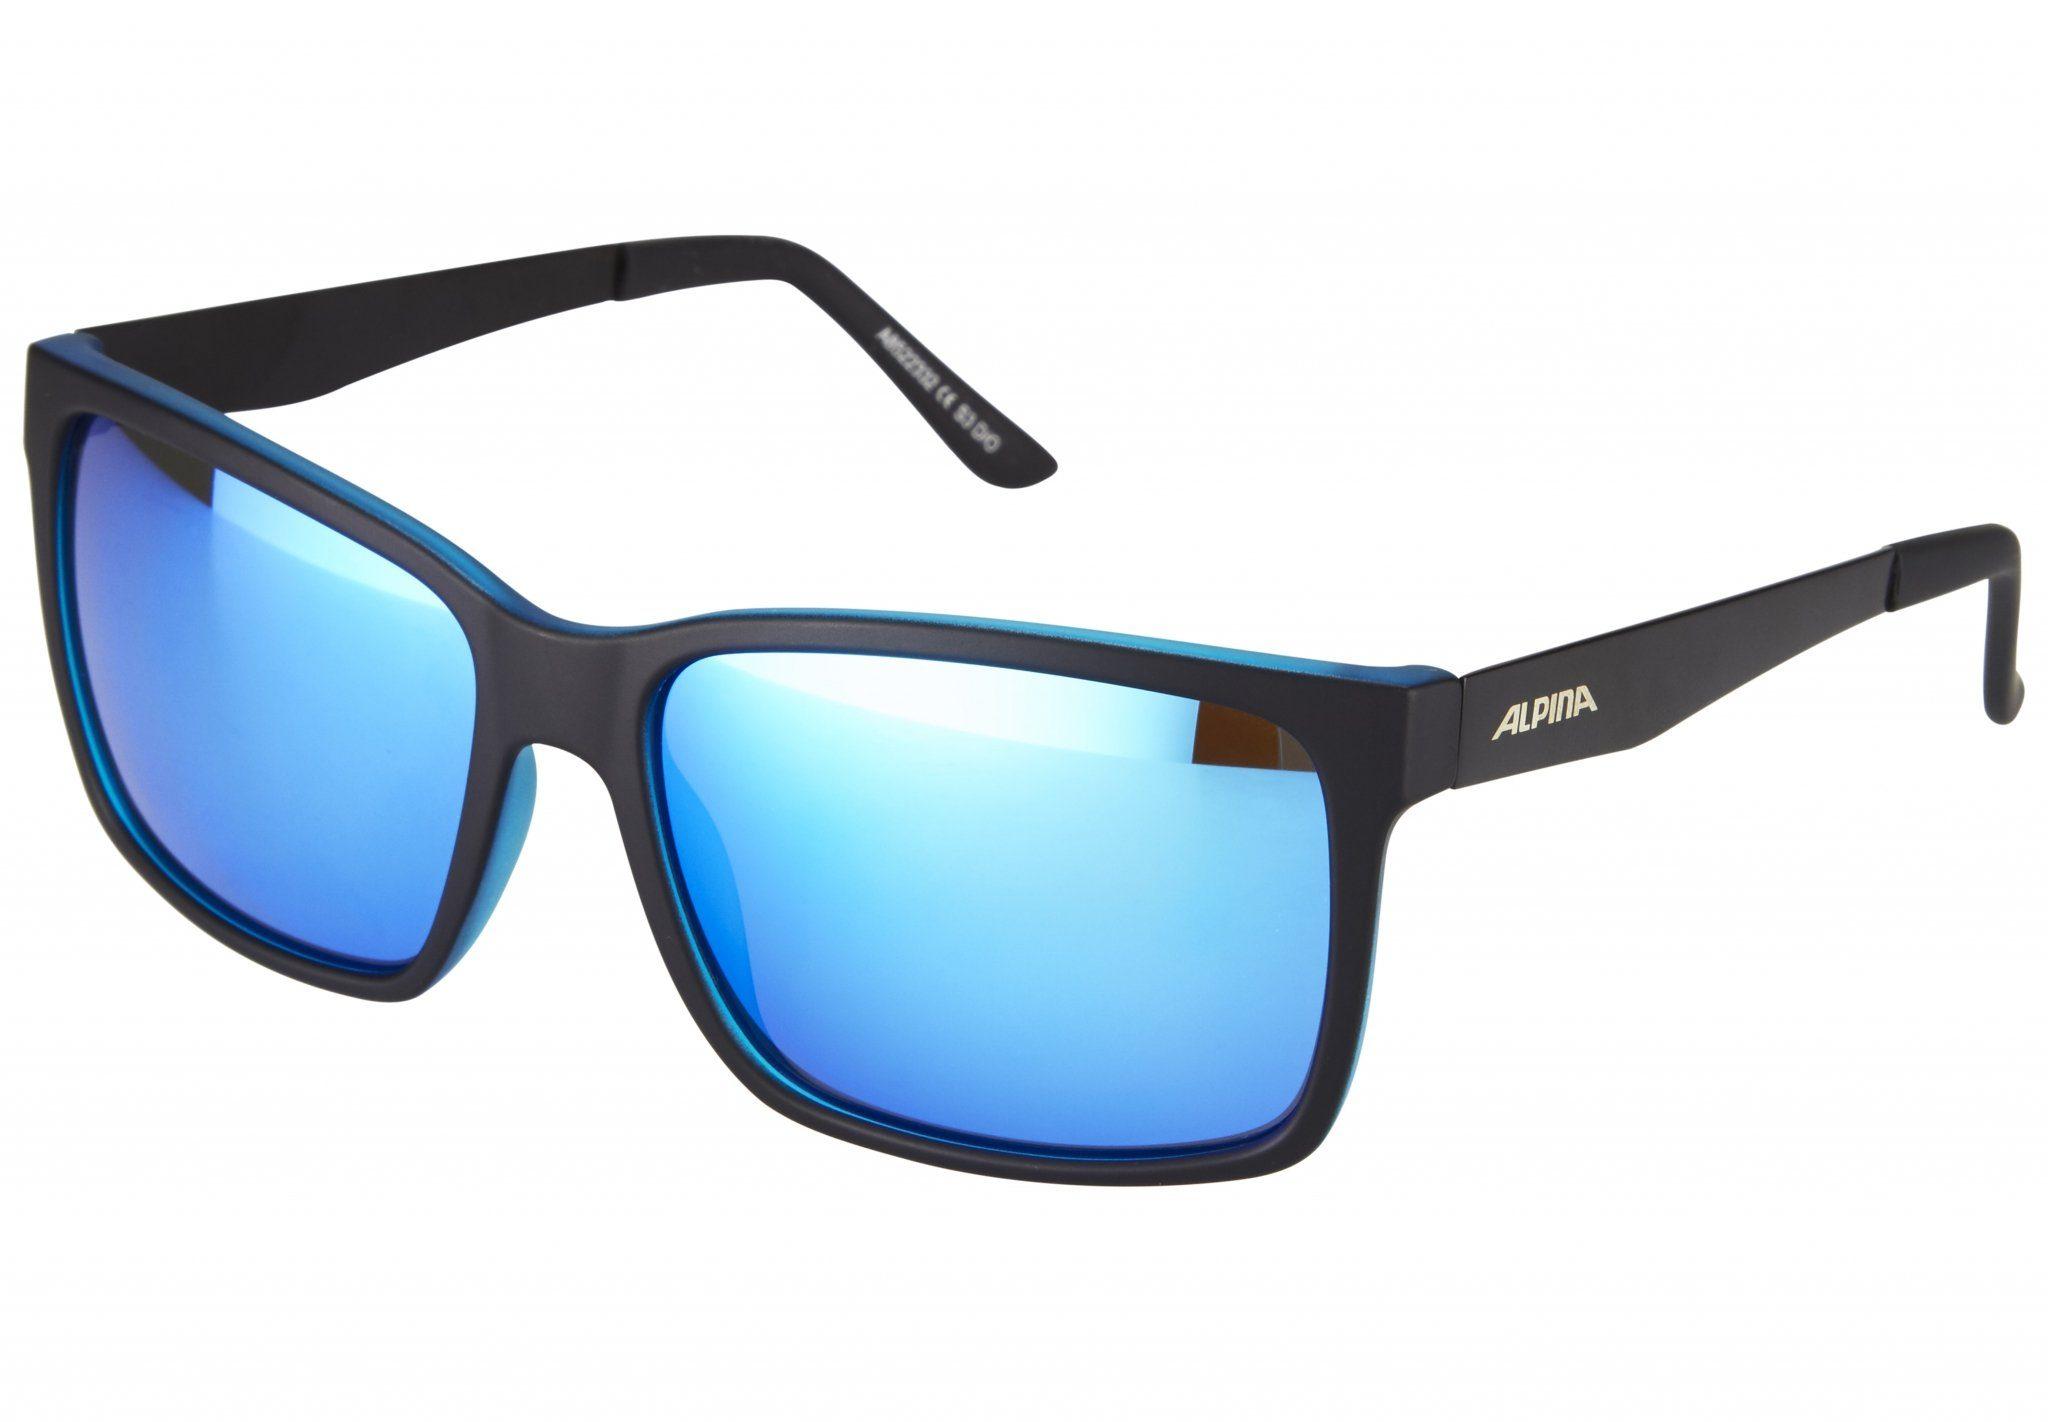 Alpina Radsportbrille »Don Hugo«